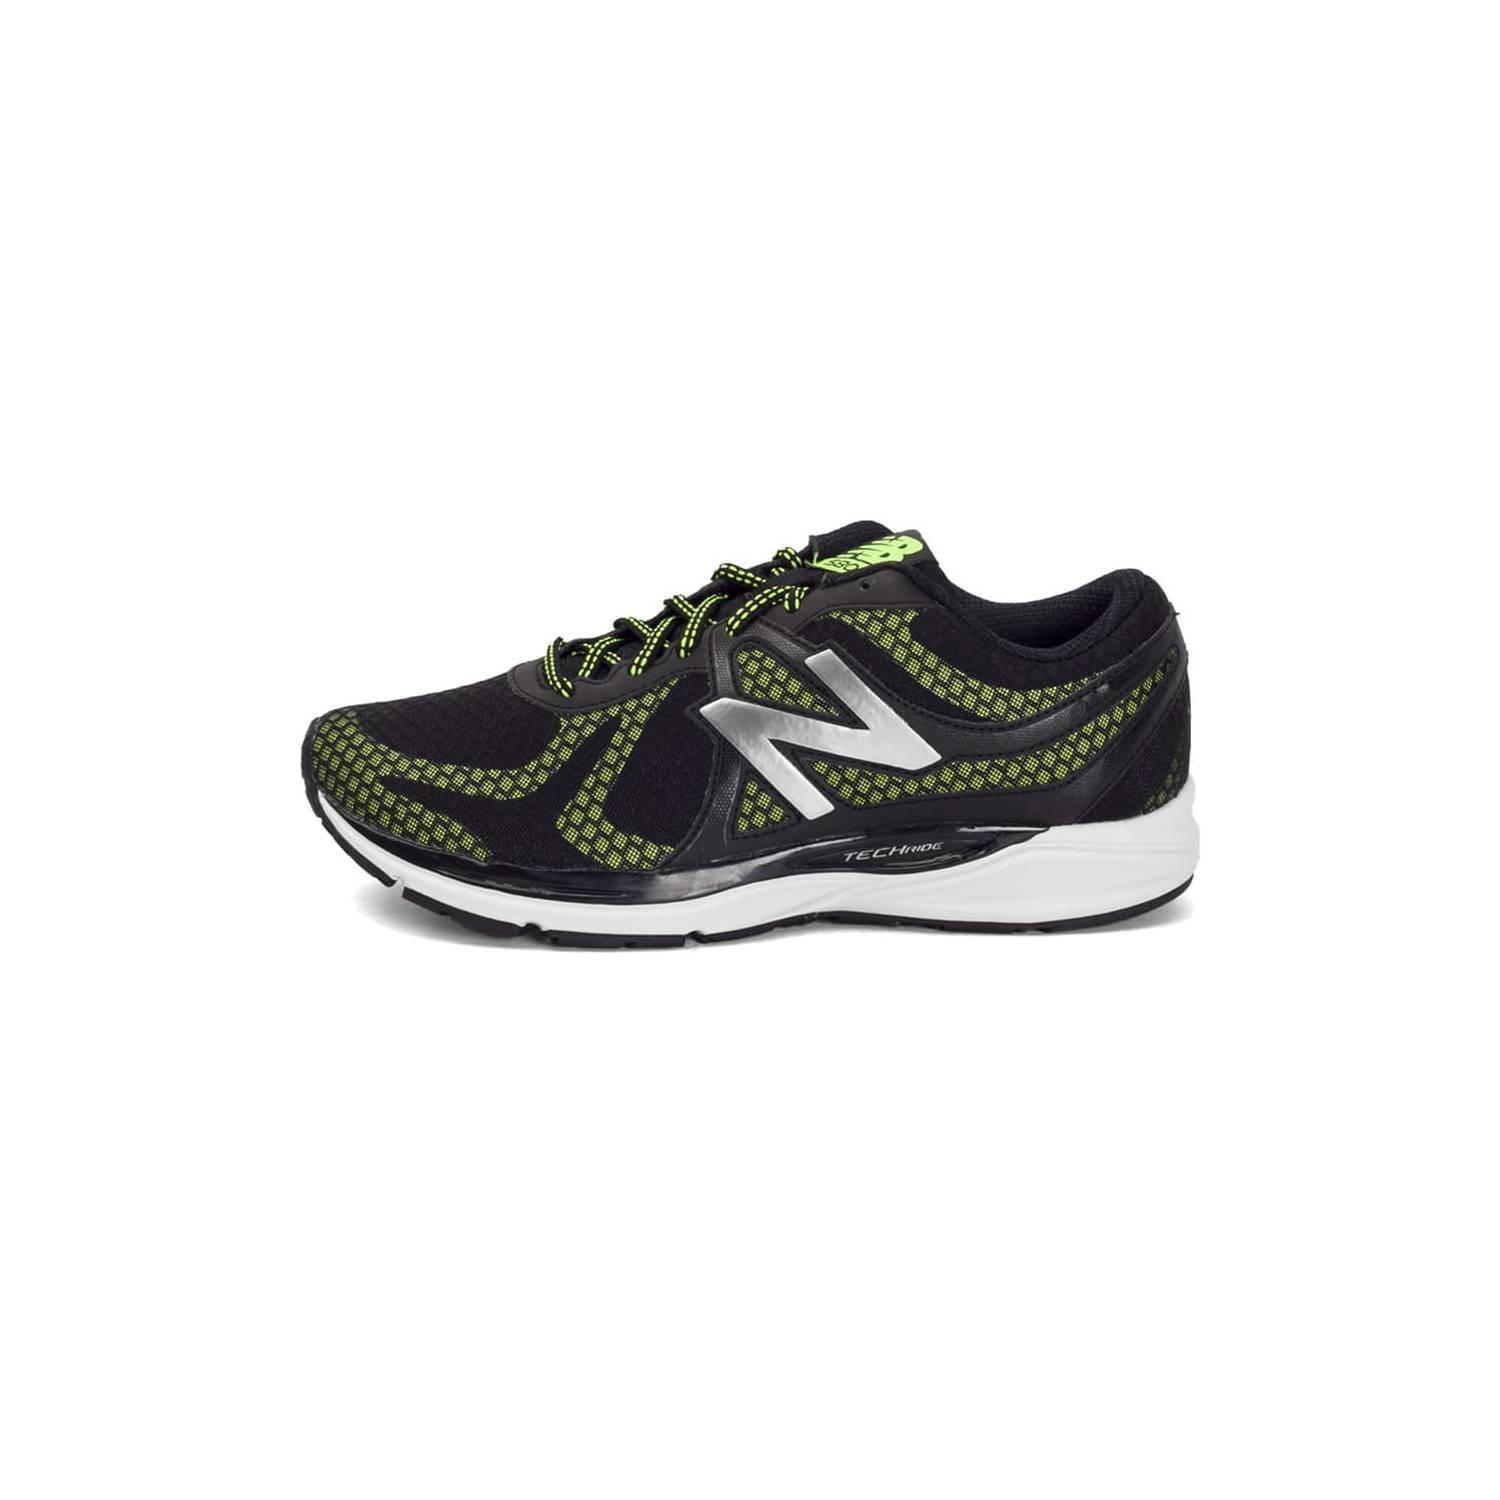 New Balance Flex Ride 530 Mens Running Shoes Abu Abu - Referensi ... bf9276f9d9